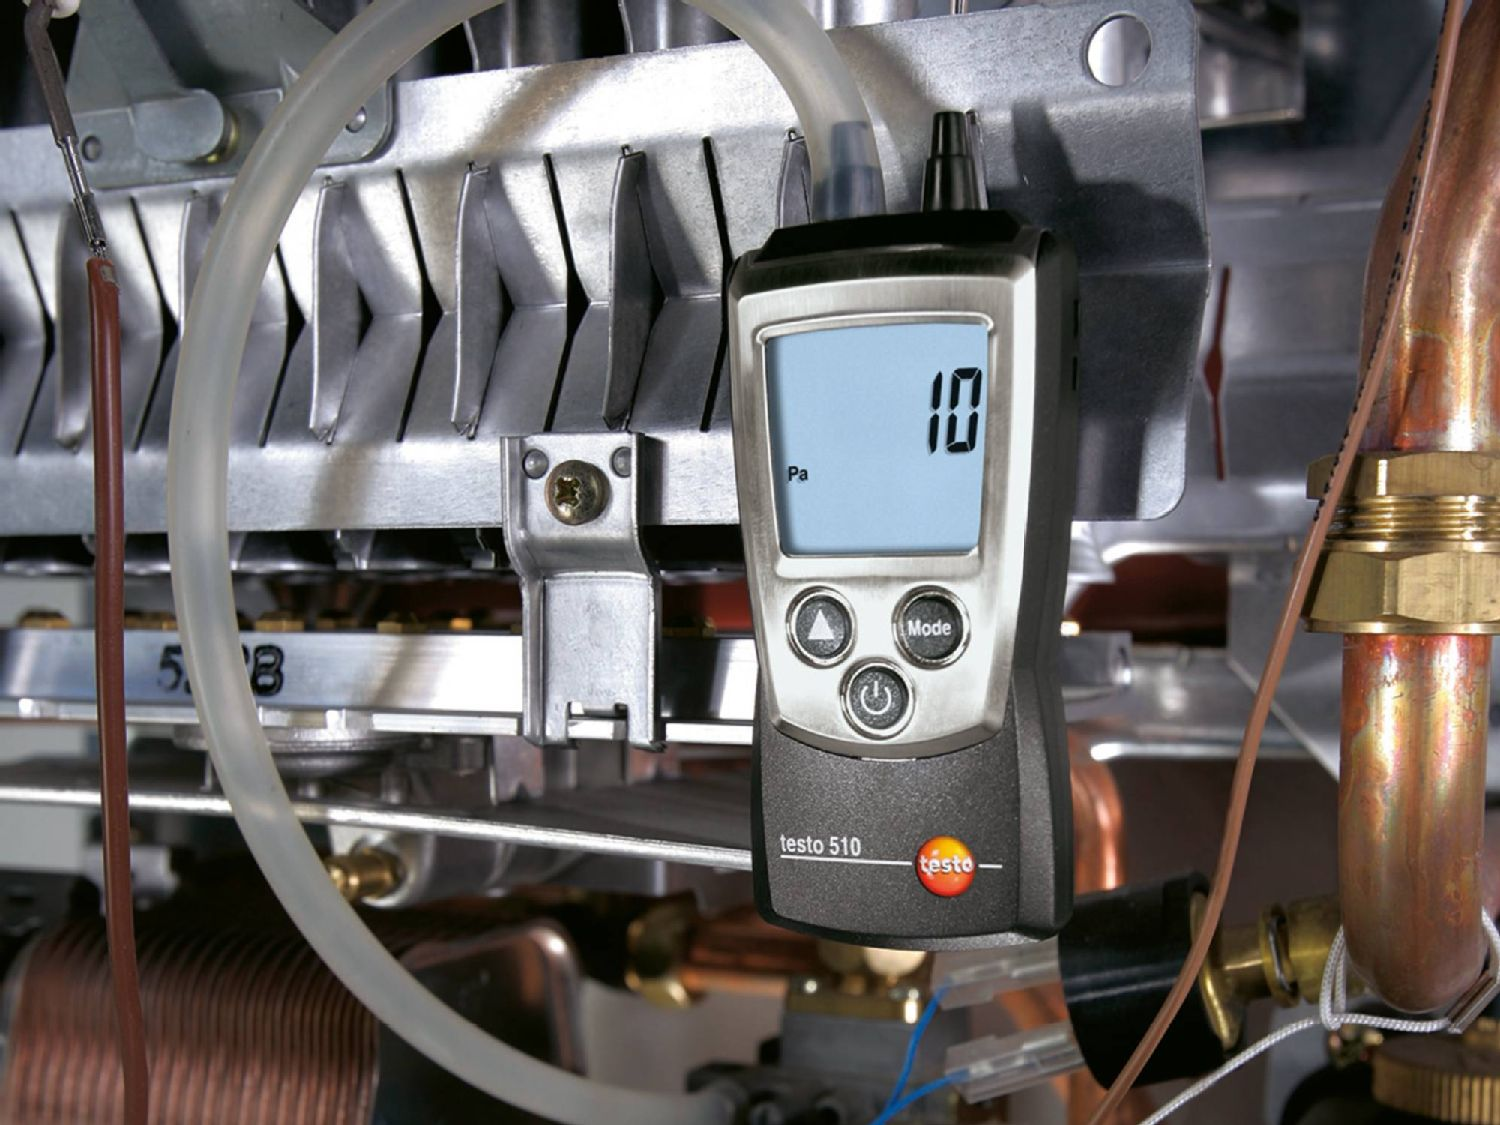 Reading the gas connection and nozzle pressure on the testo 510